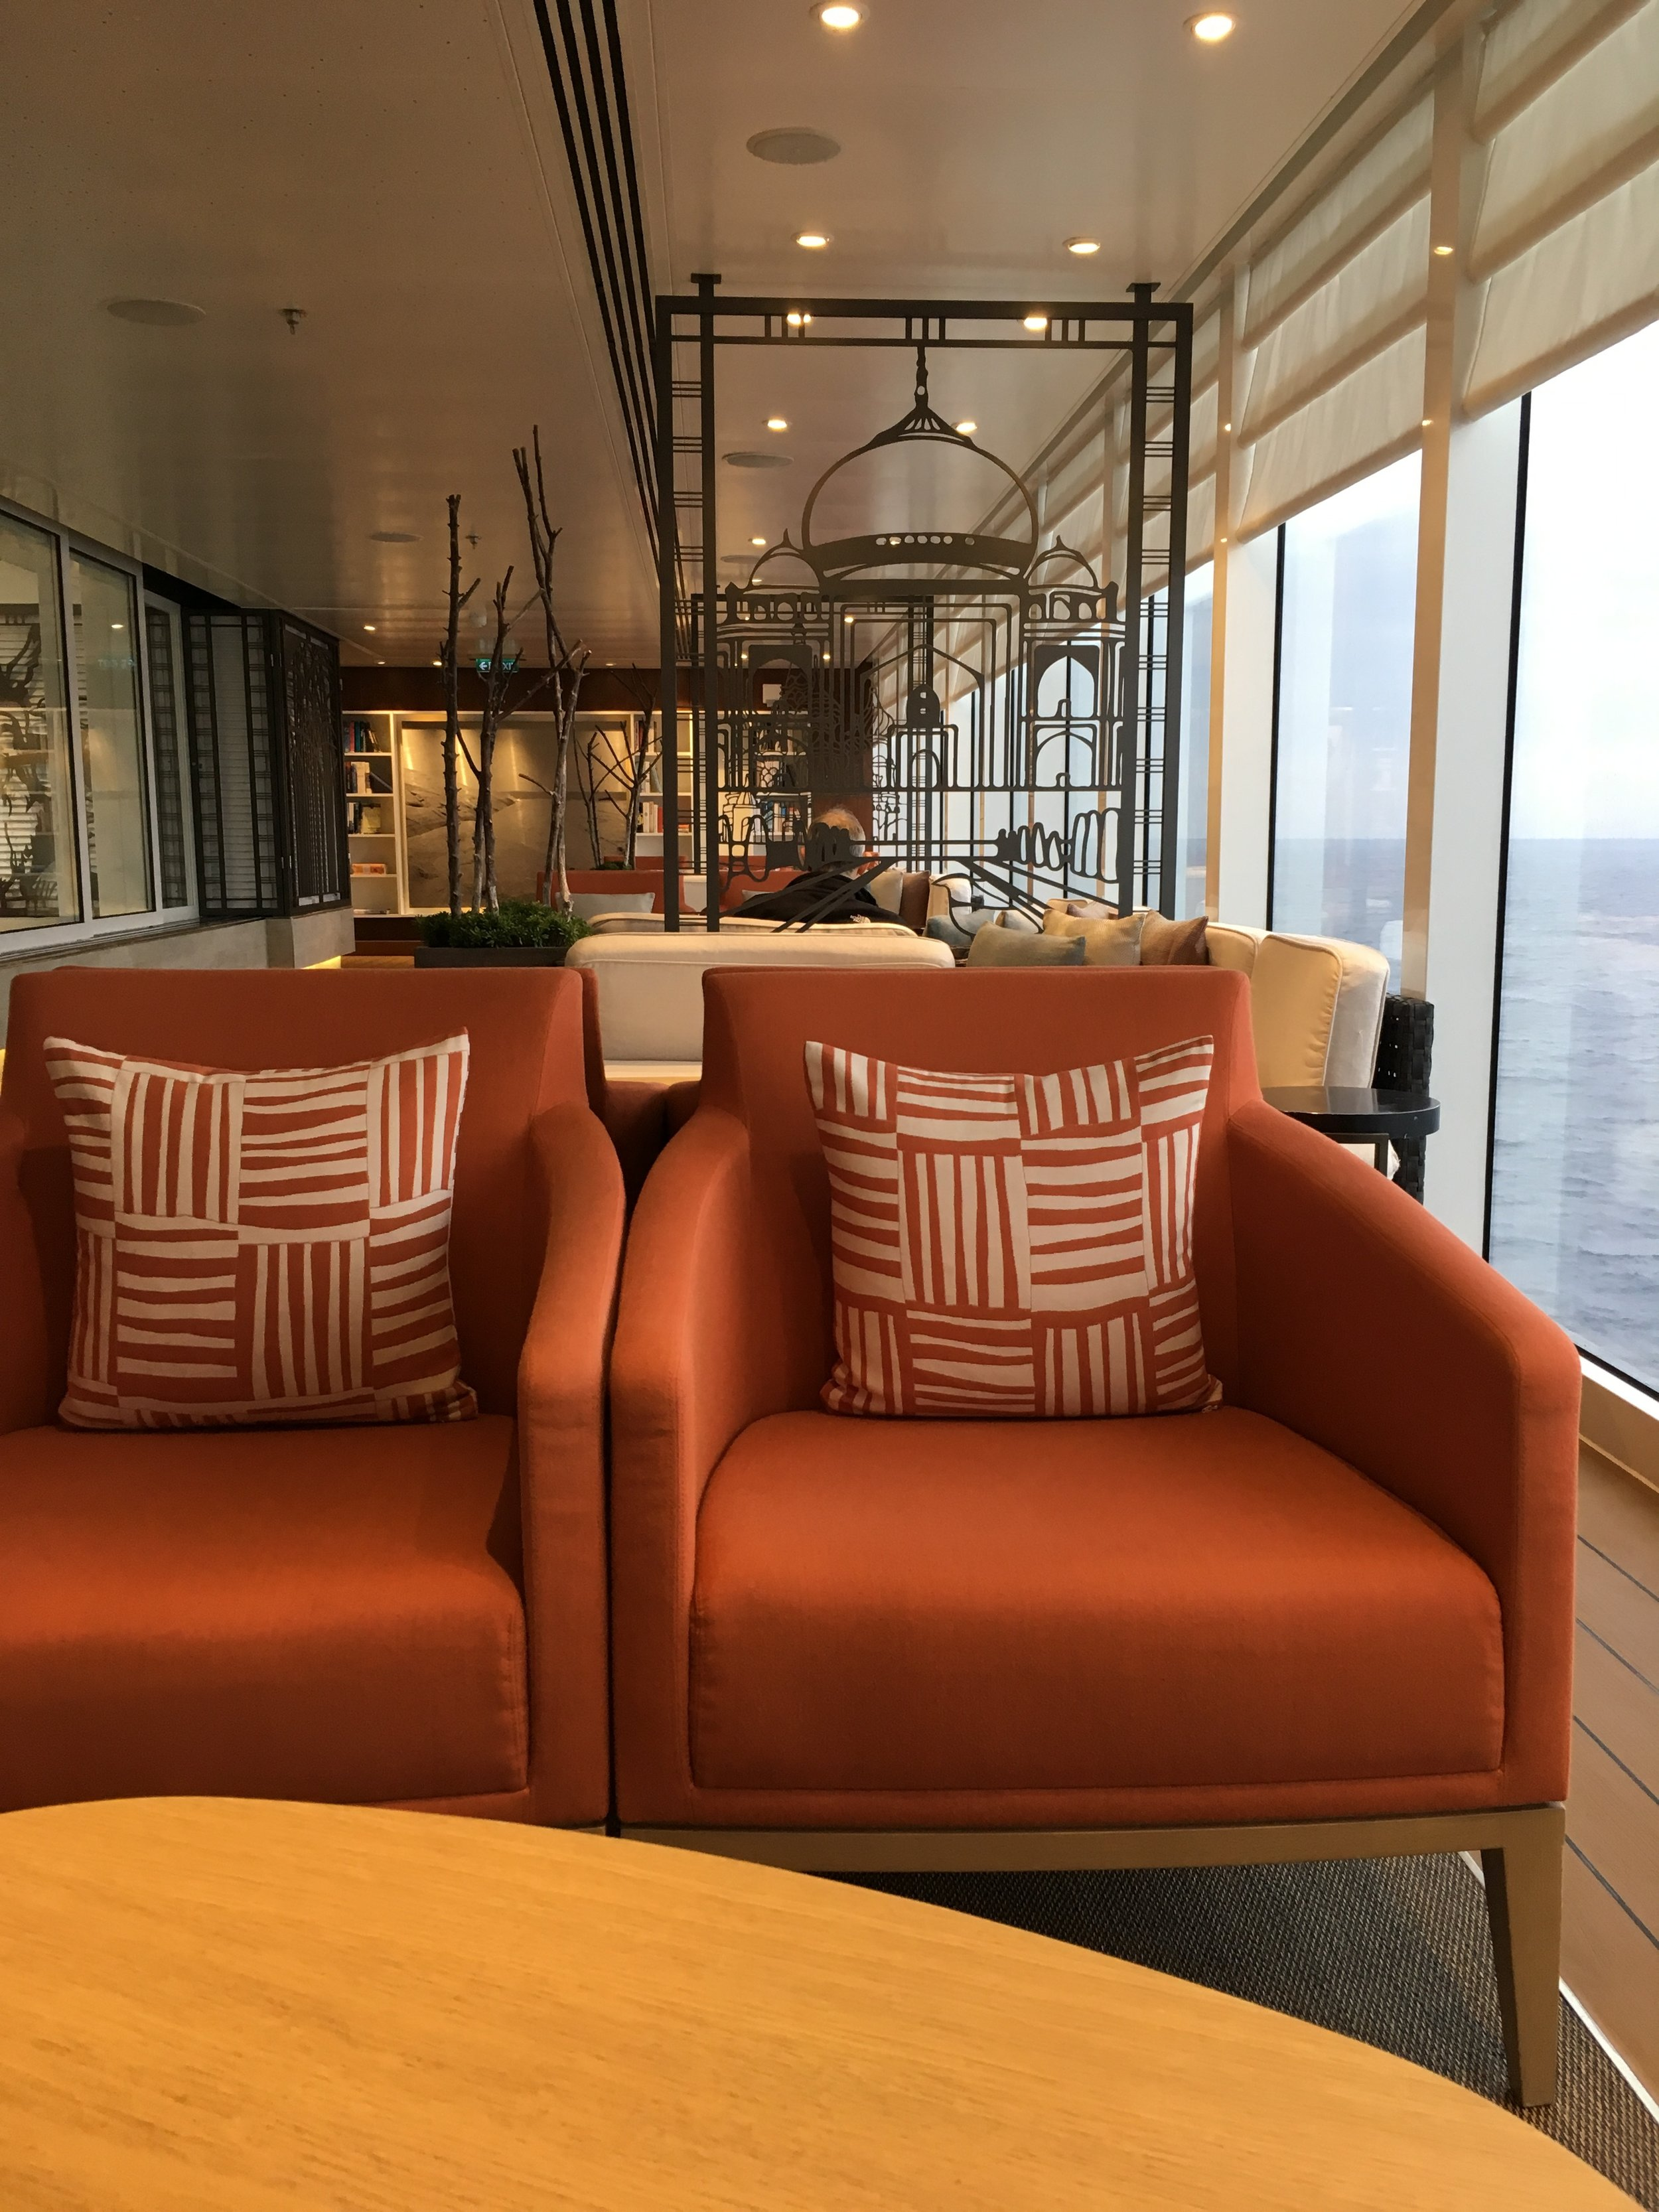 One of many comfortable and quiet public spaces on the Viking Star